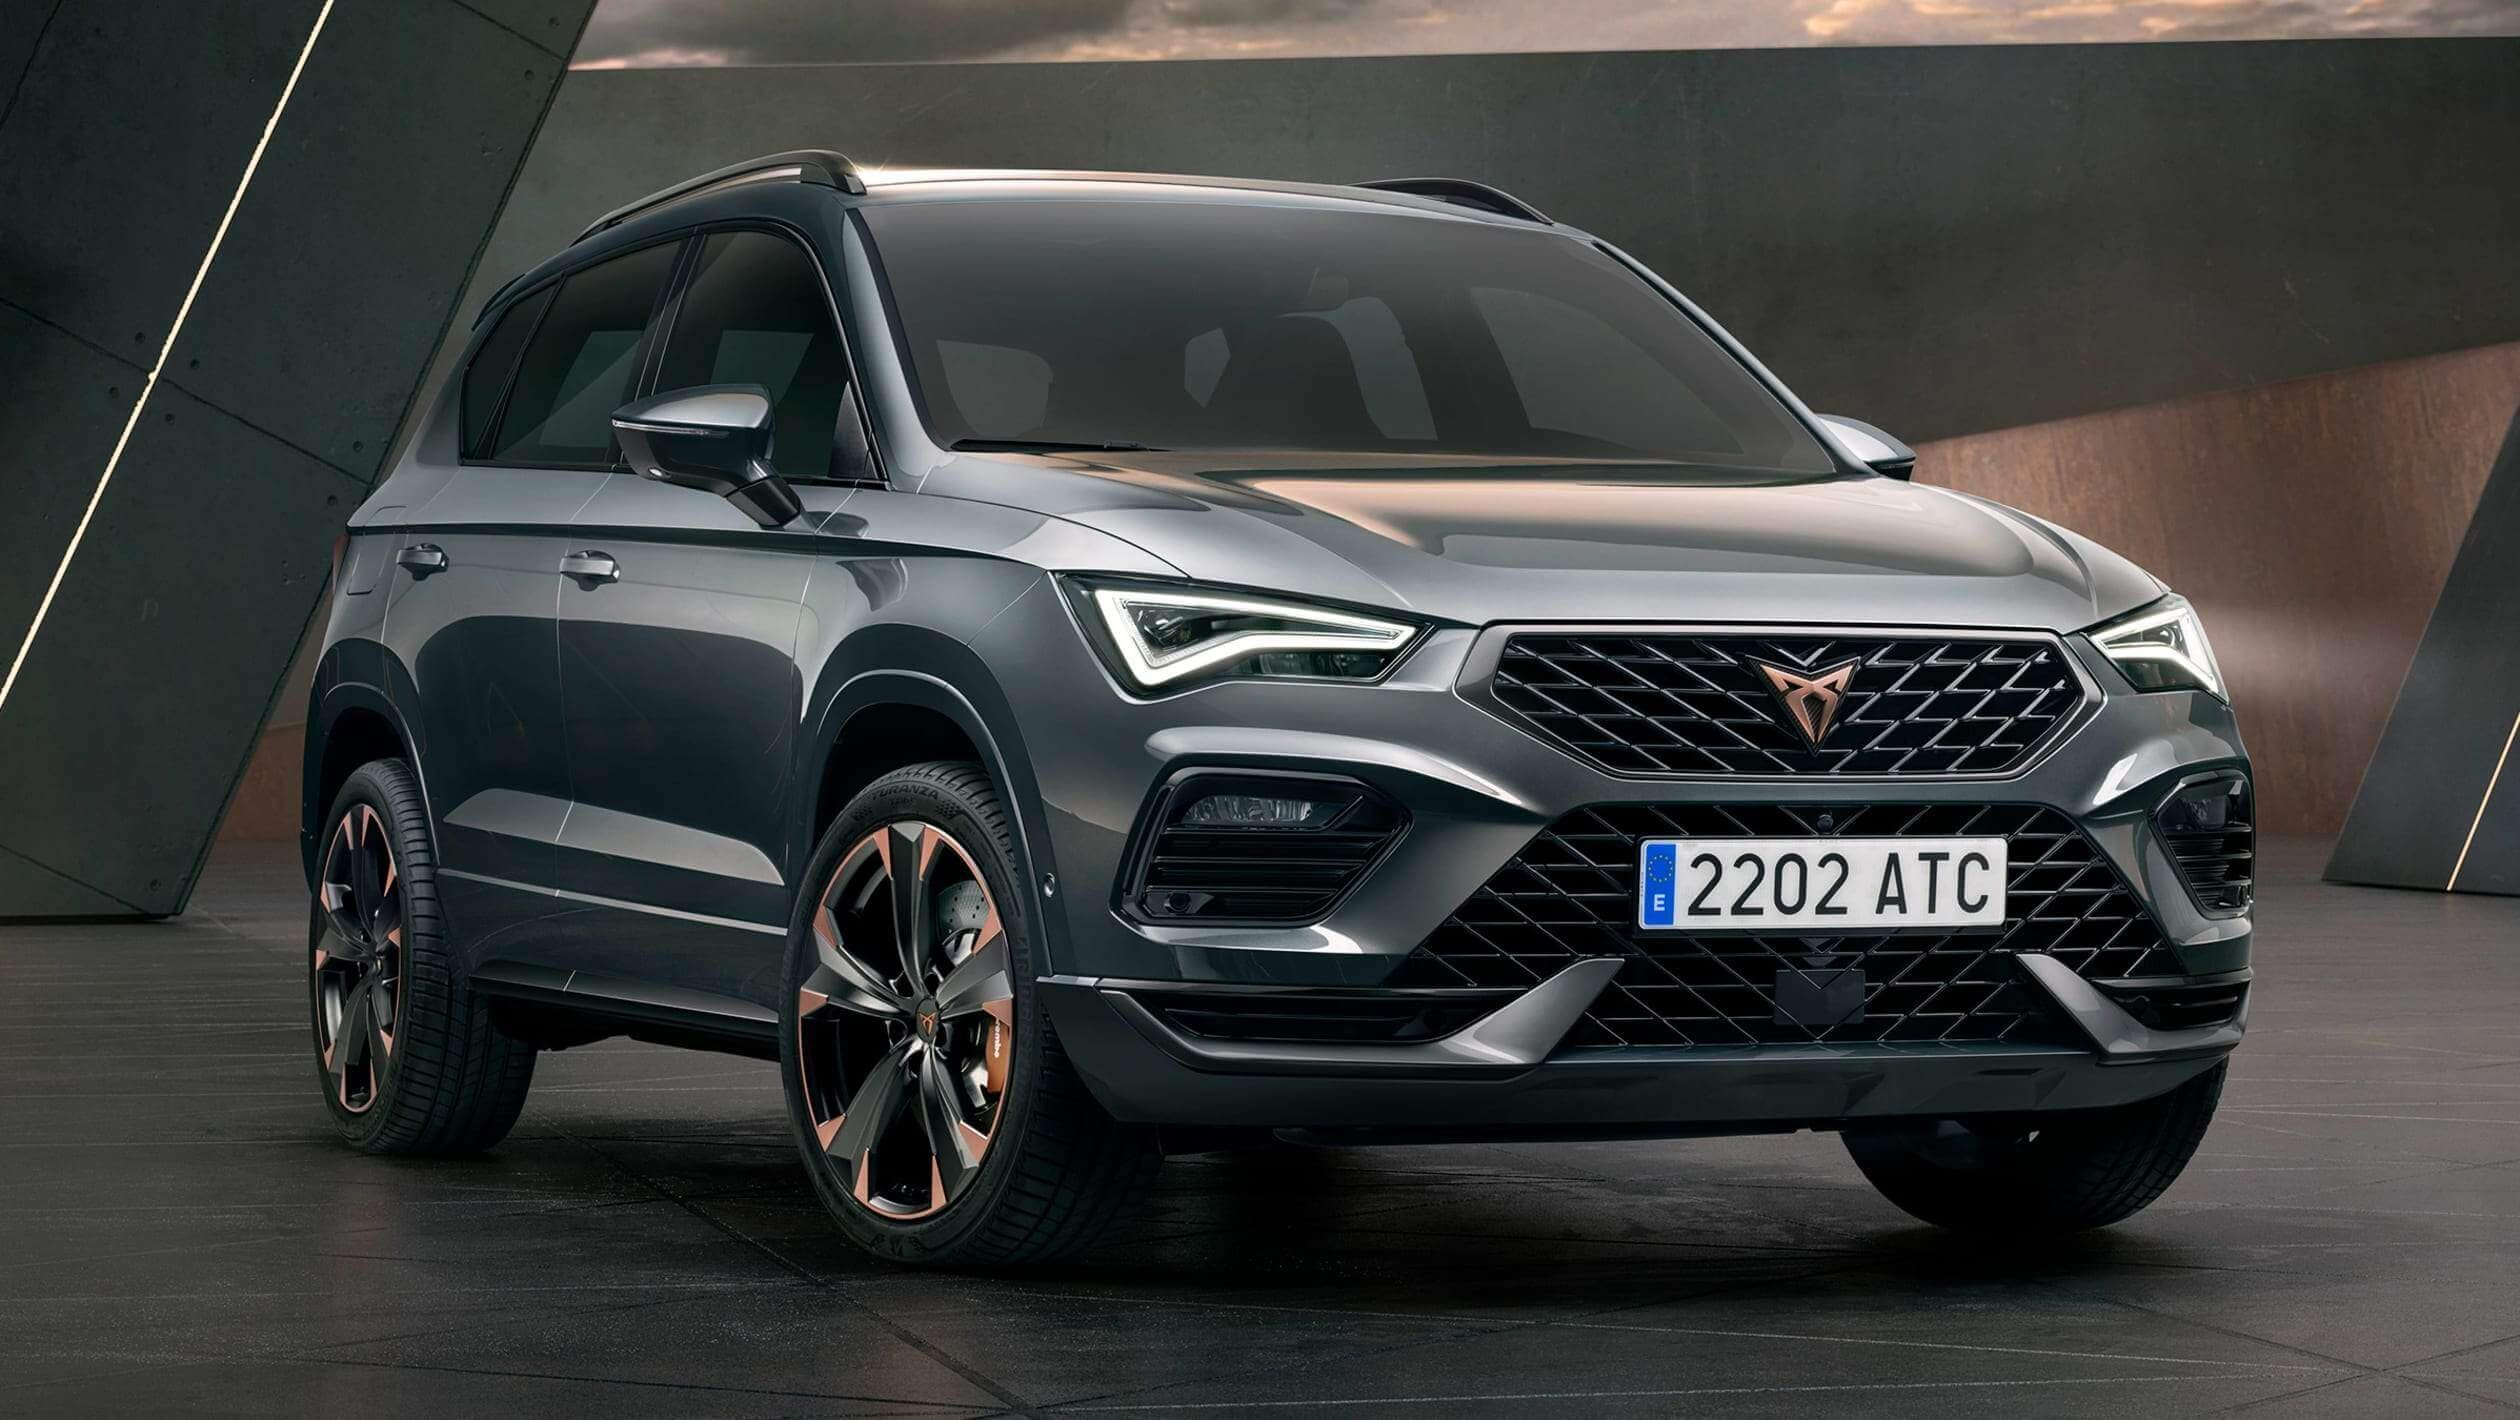 New 2020 Cupra Ateca facelift revealed with more tech